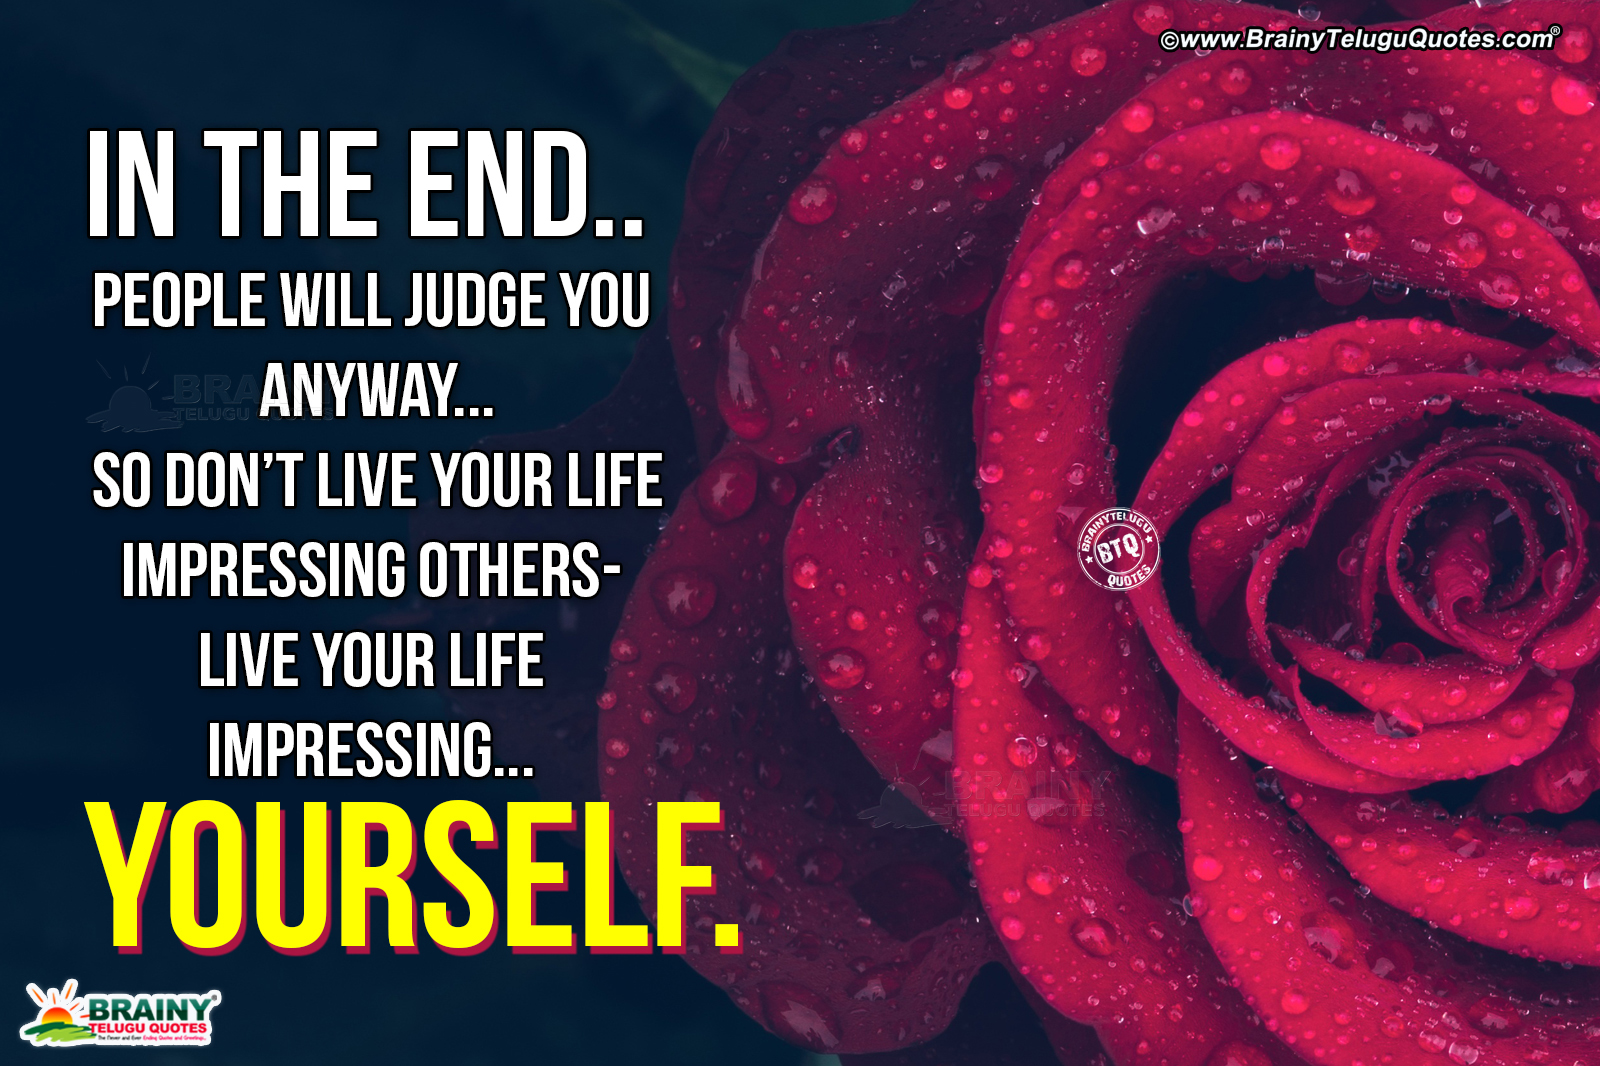 Famous English Self Motivational Life Changing Quotes With Hd Wallpapers Brainyteluguquotes Comtelugu Quotes English Quotes Hindi Quotes Tamil Quotes Greetings